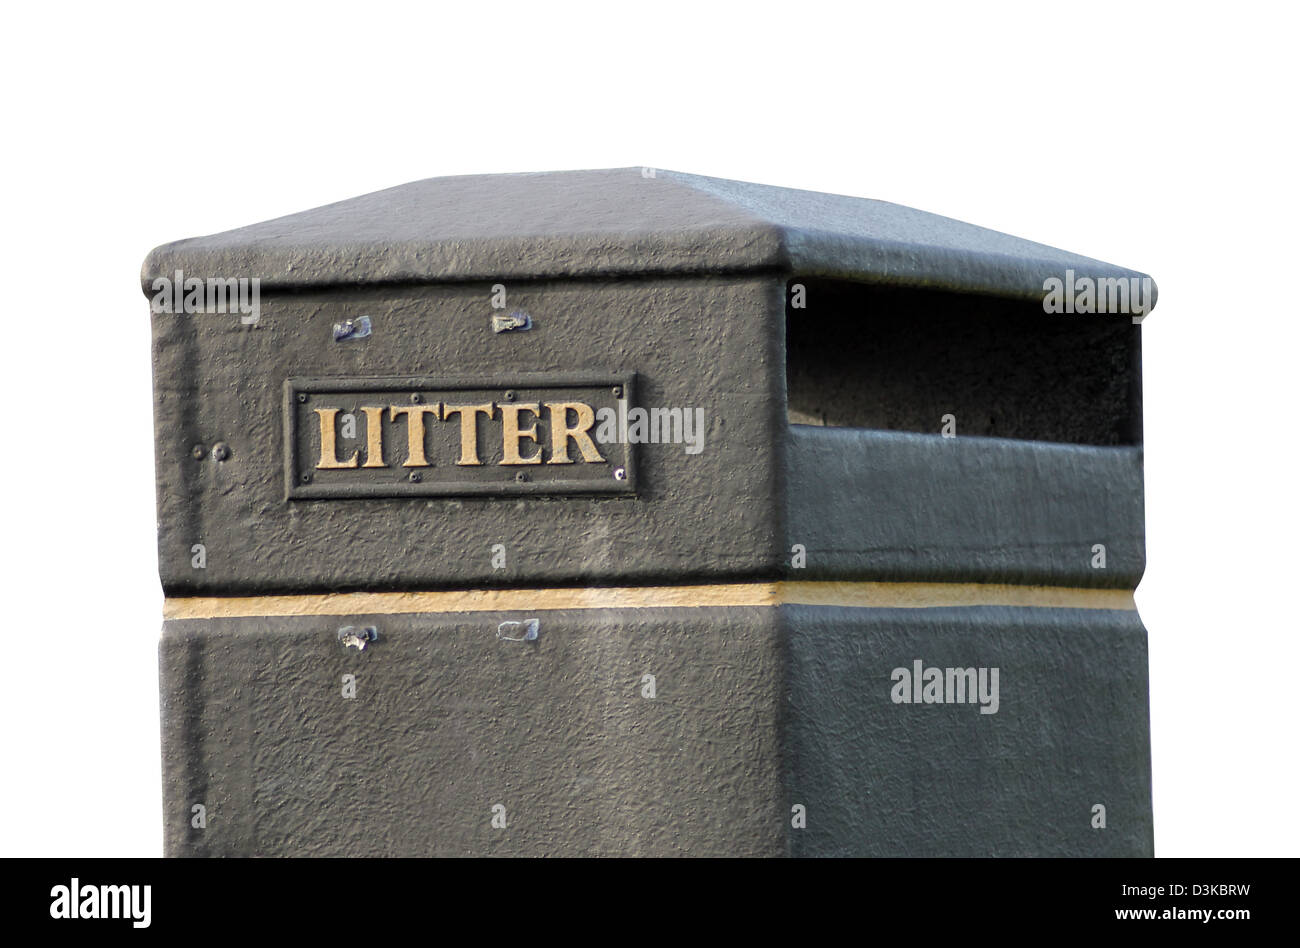 Litter bin isolated on a white background. - Stock Image